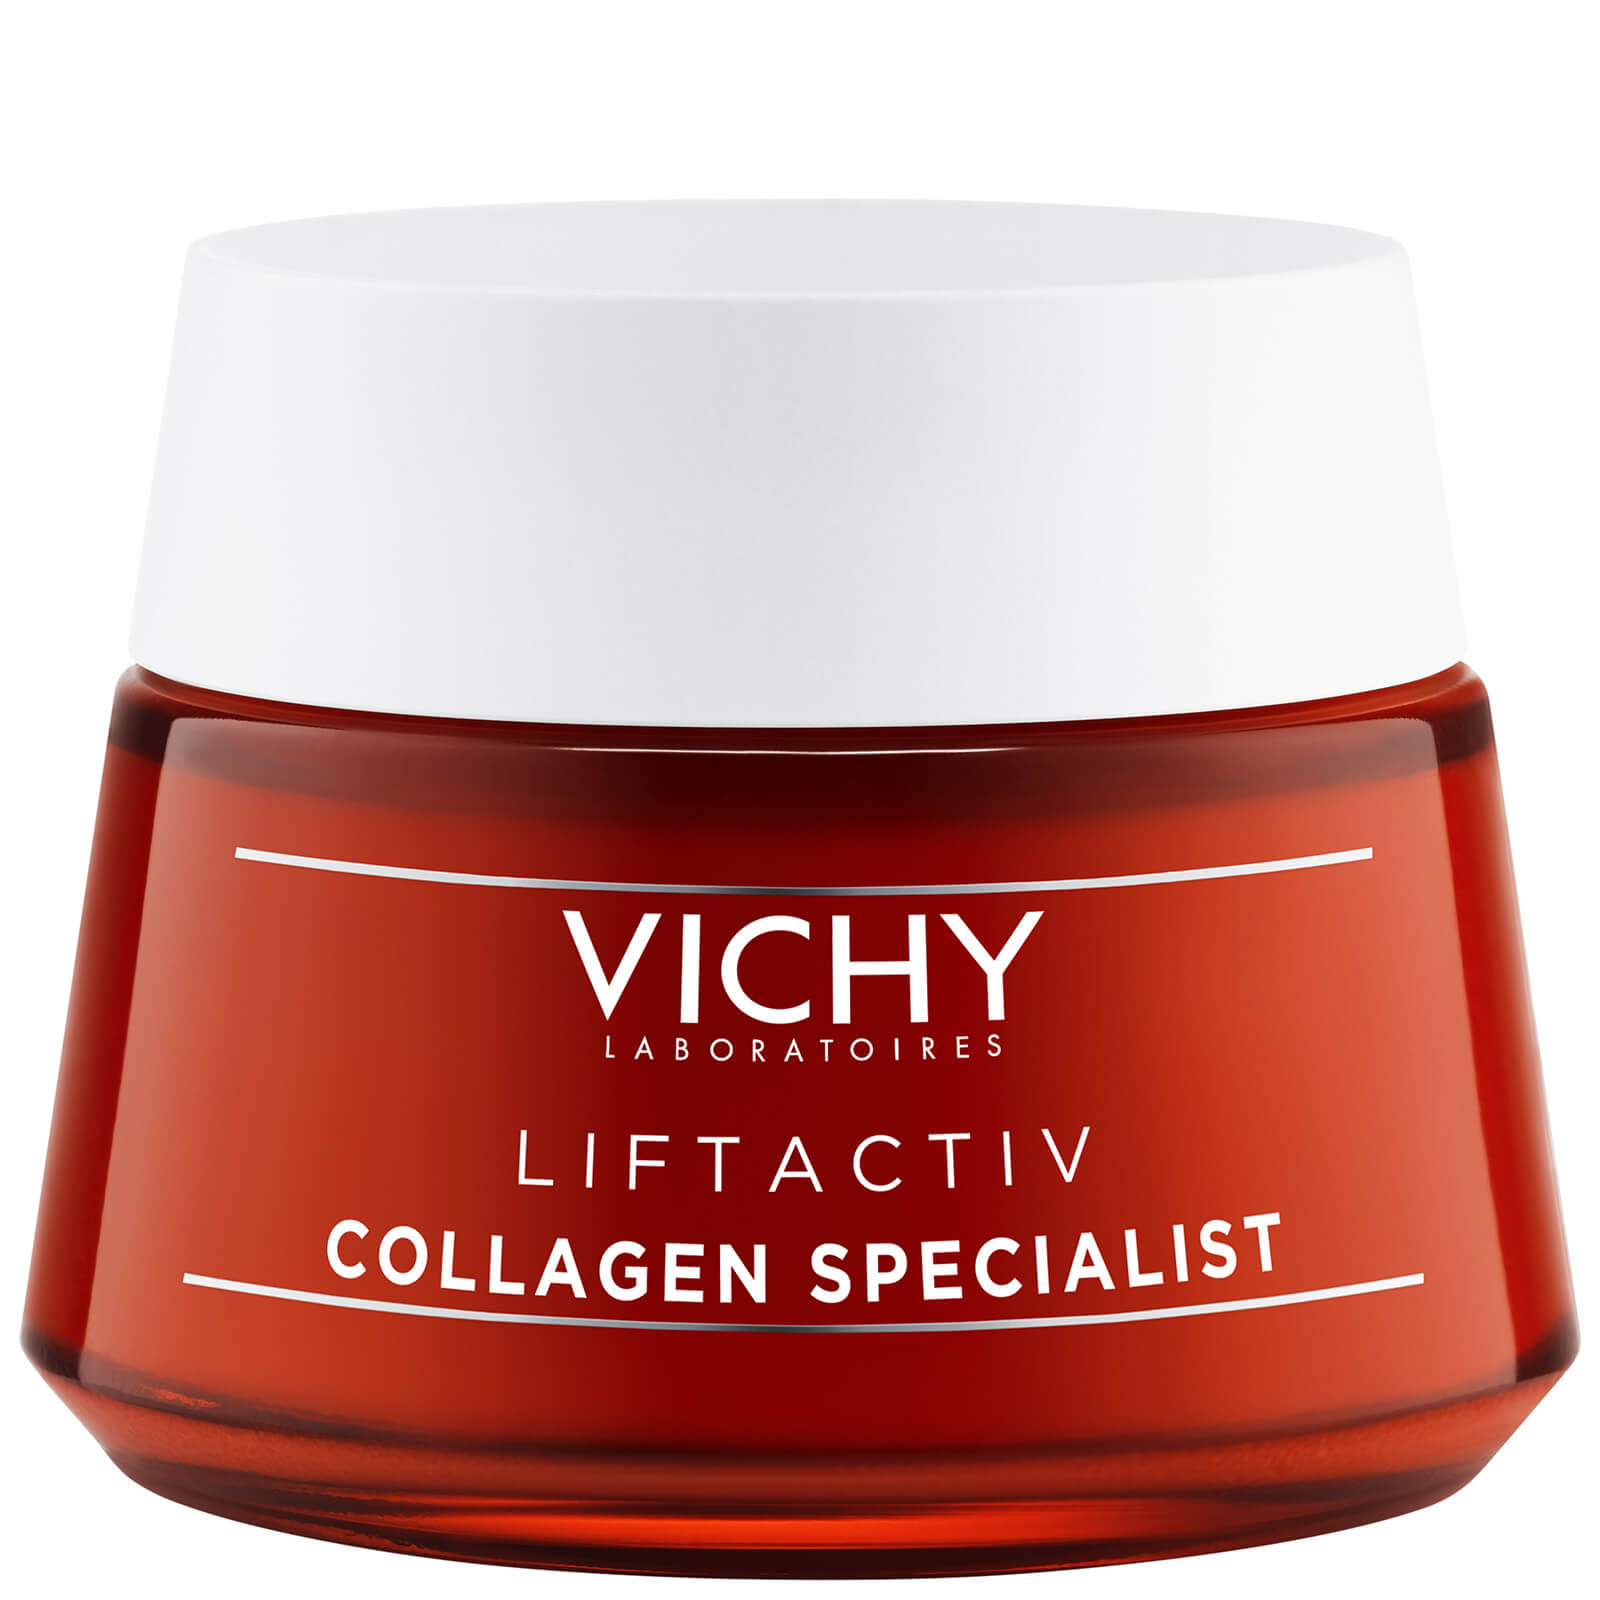 Vichy Liftactiv Collagen Specialist Antiage Creme